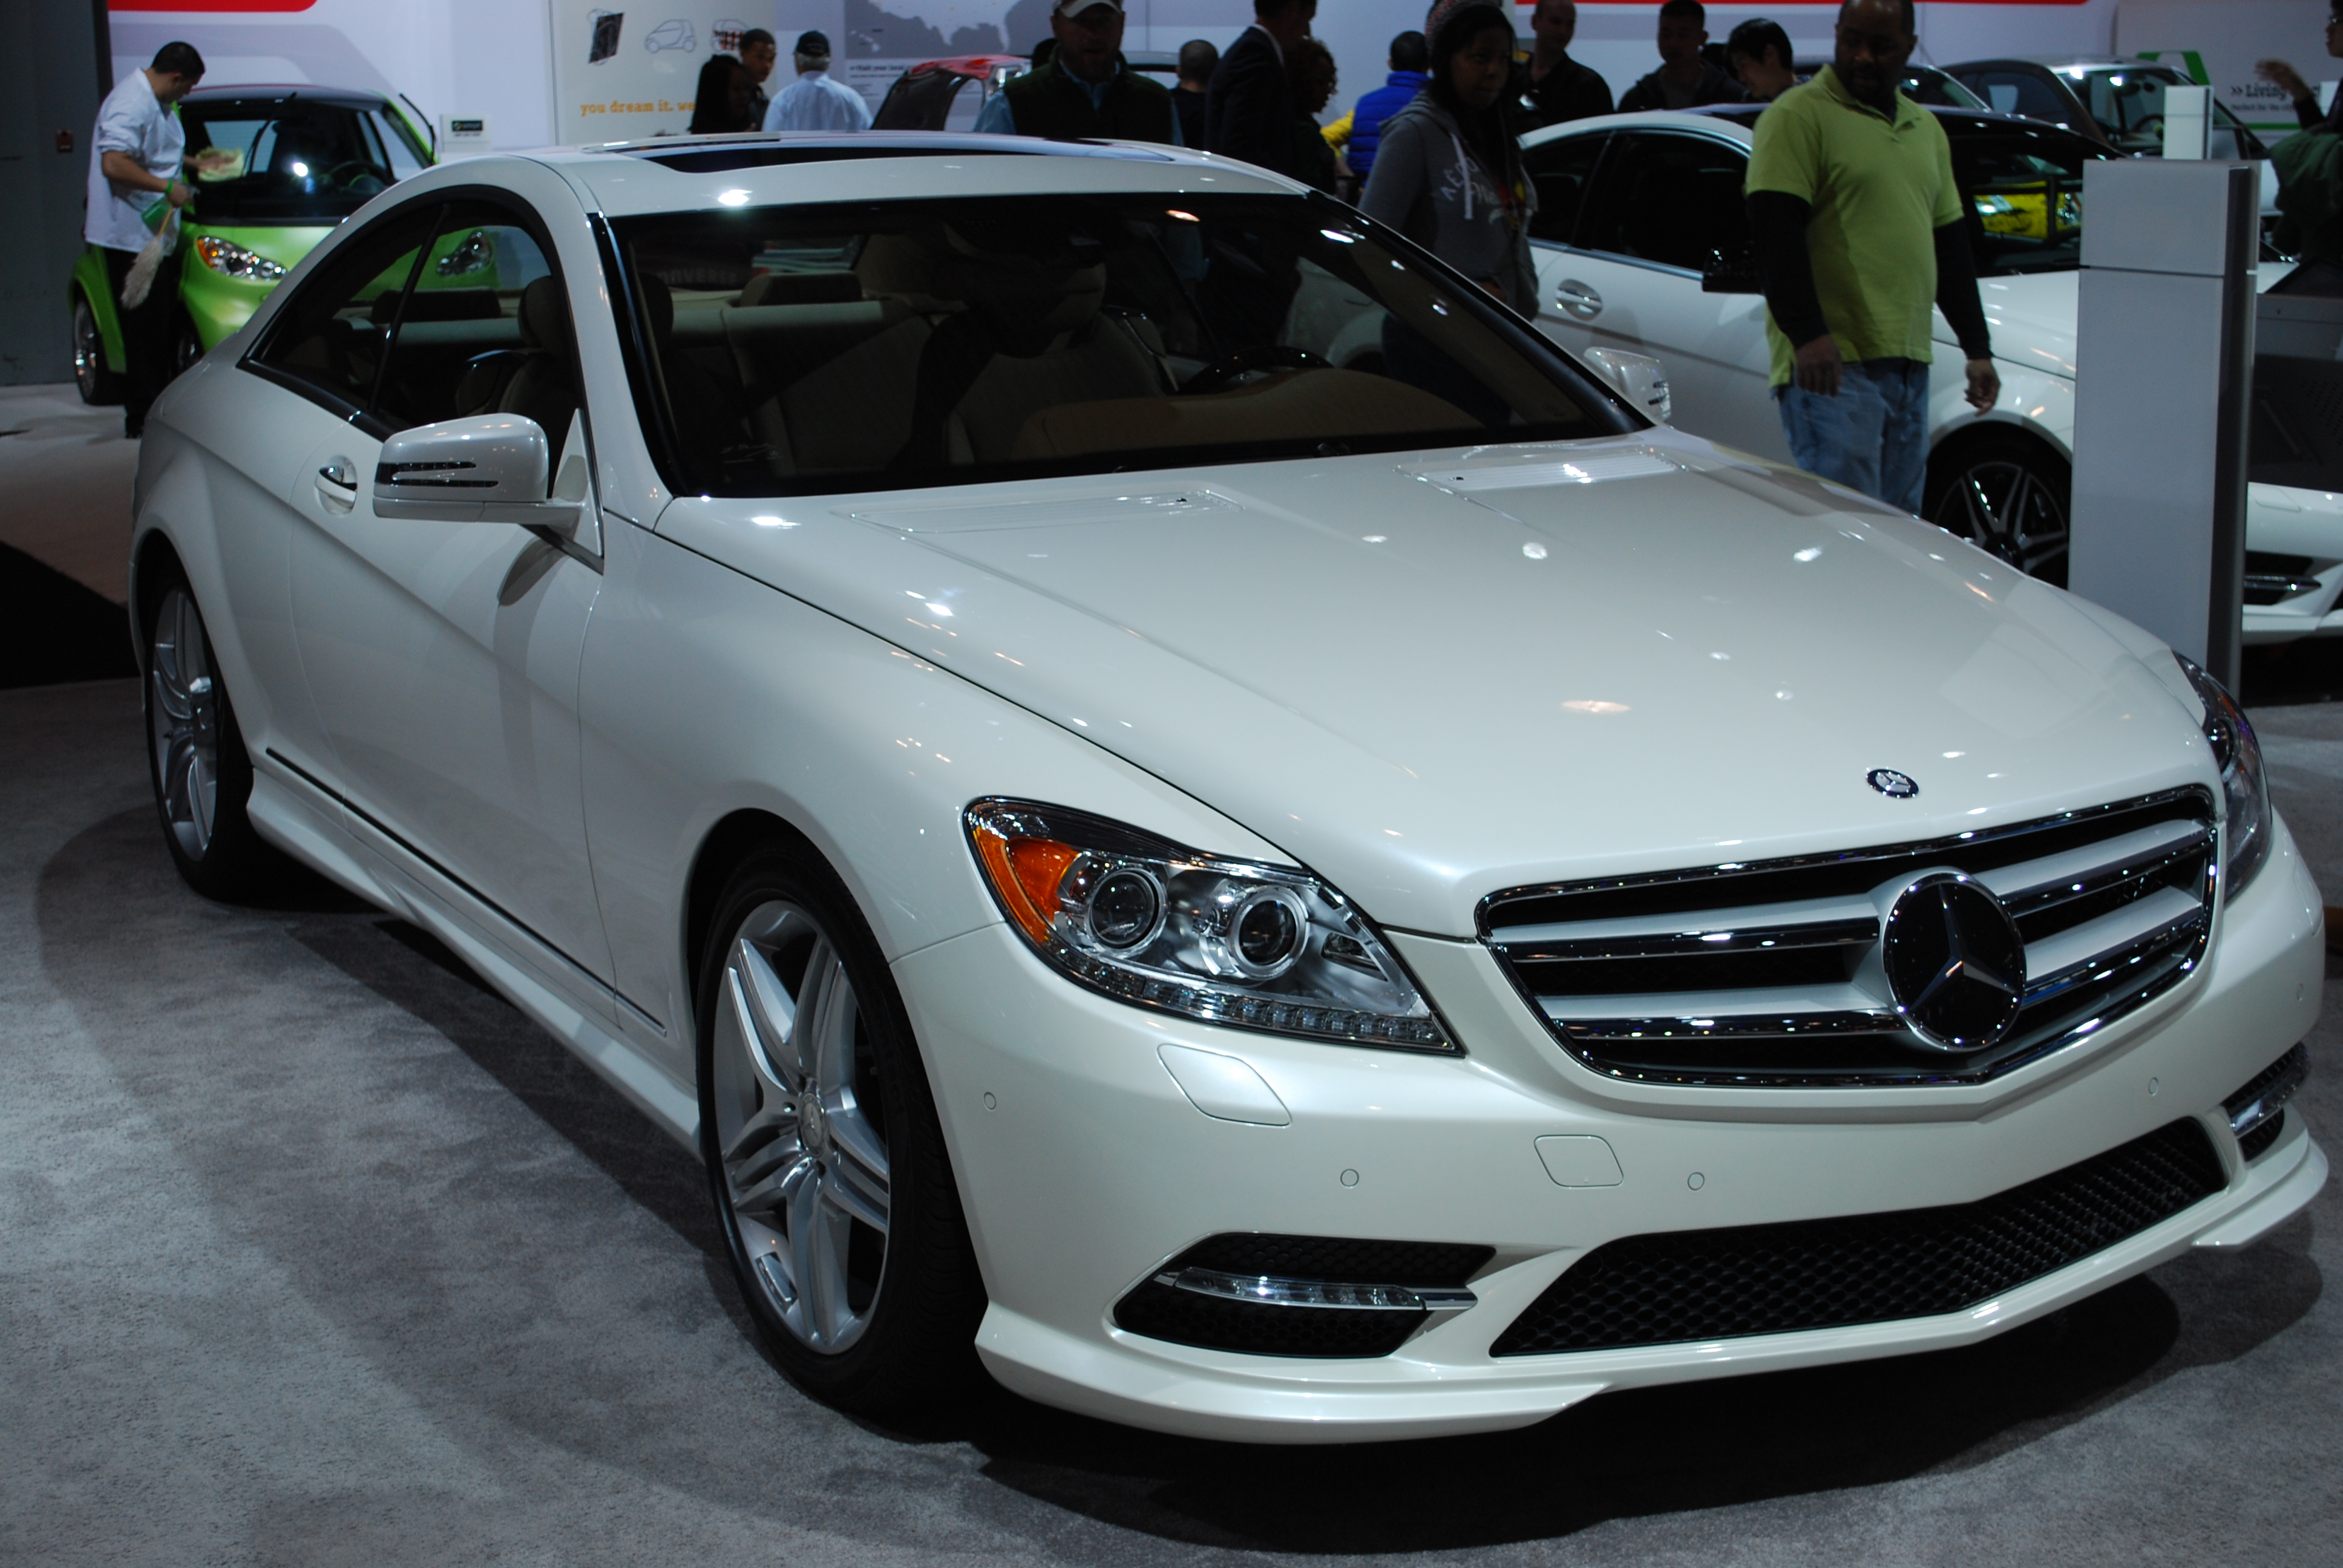 Mercedes benz cl550 4matic coupe i by hardrocker78 on for 2014 mercedes benz cl550 4matic